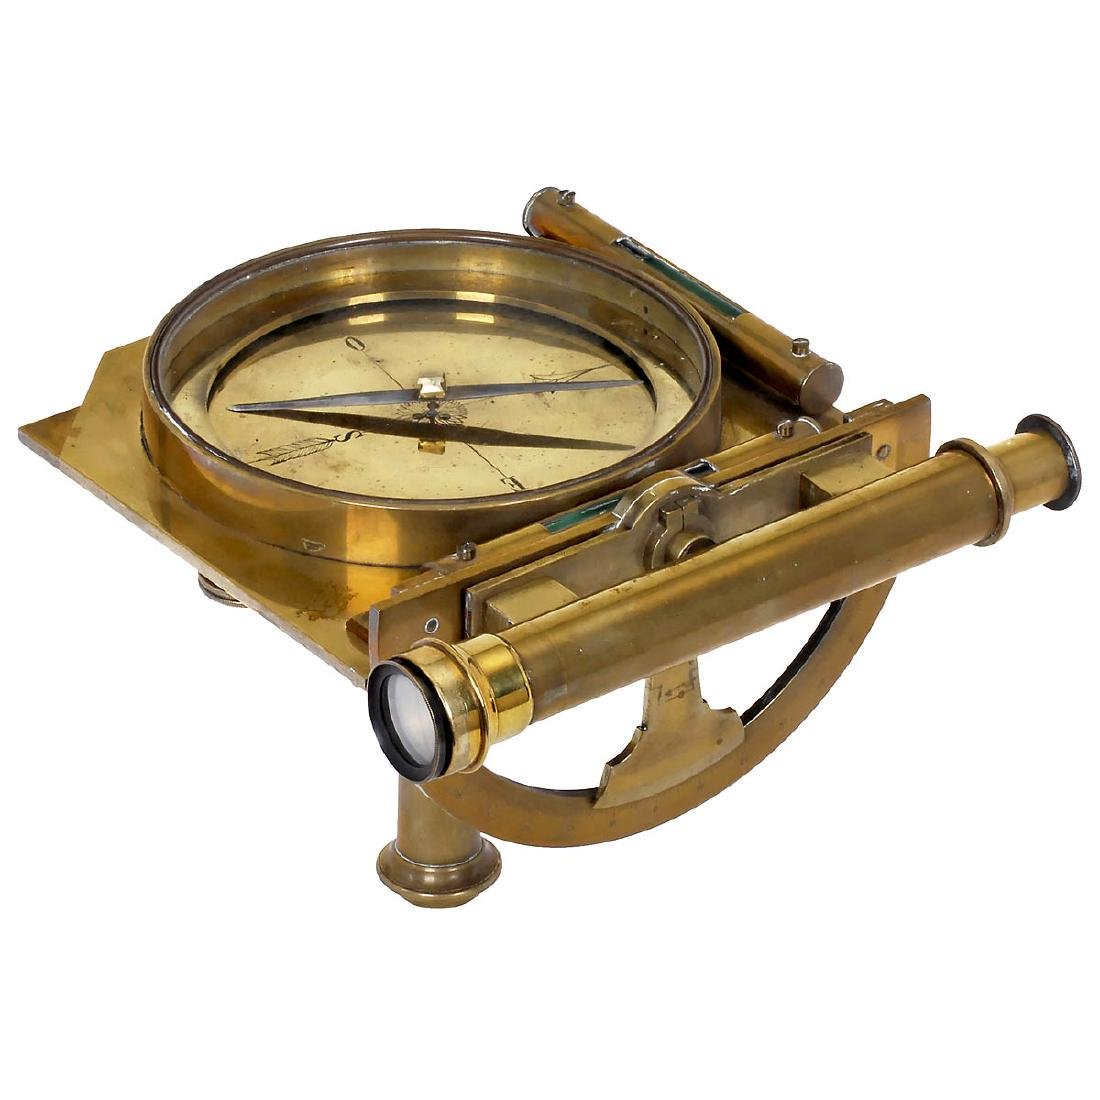 Large Compass with Protractor, c. 1850